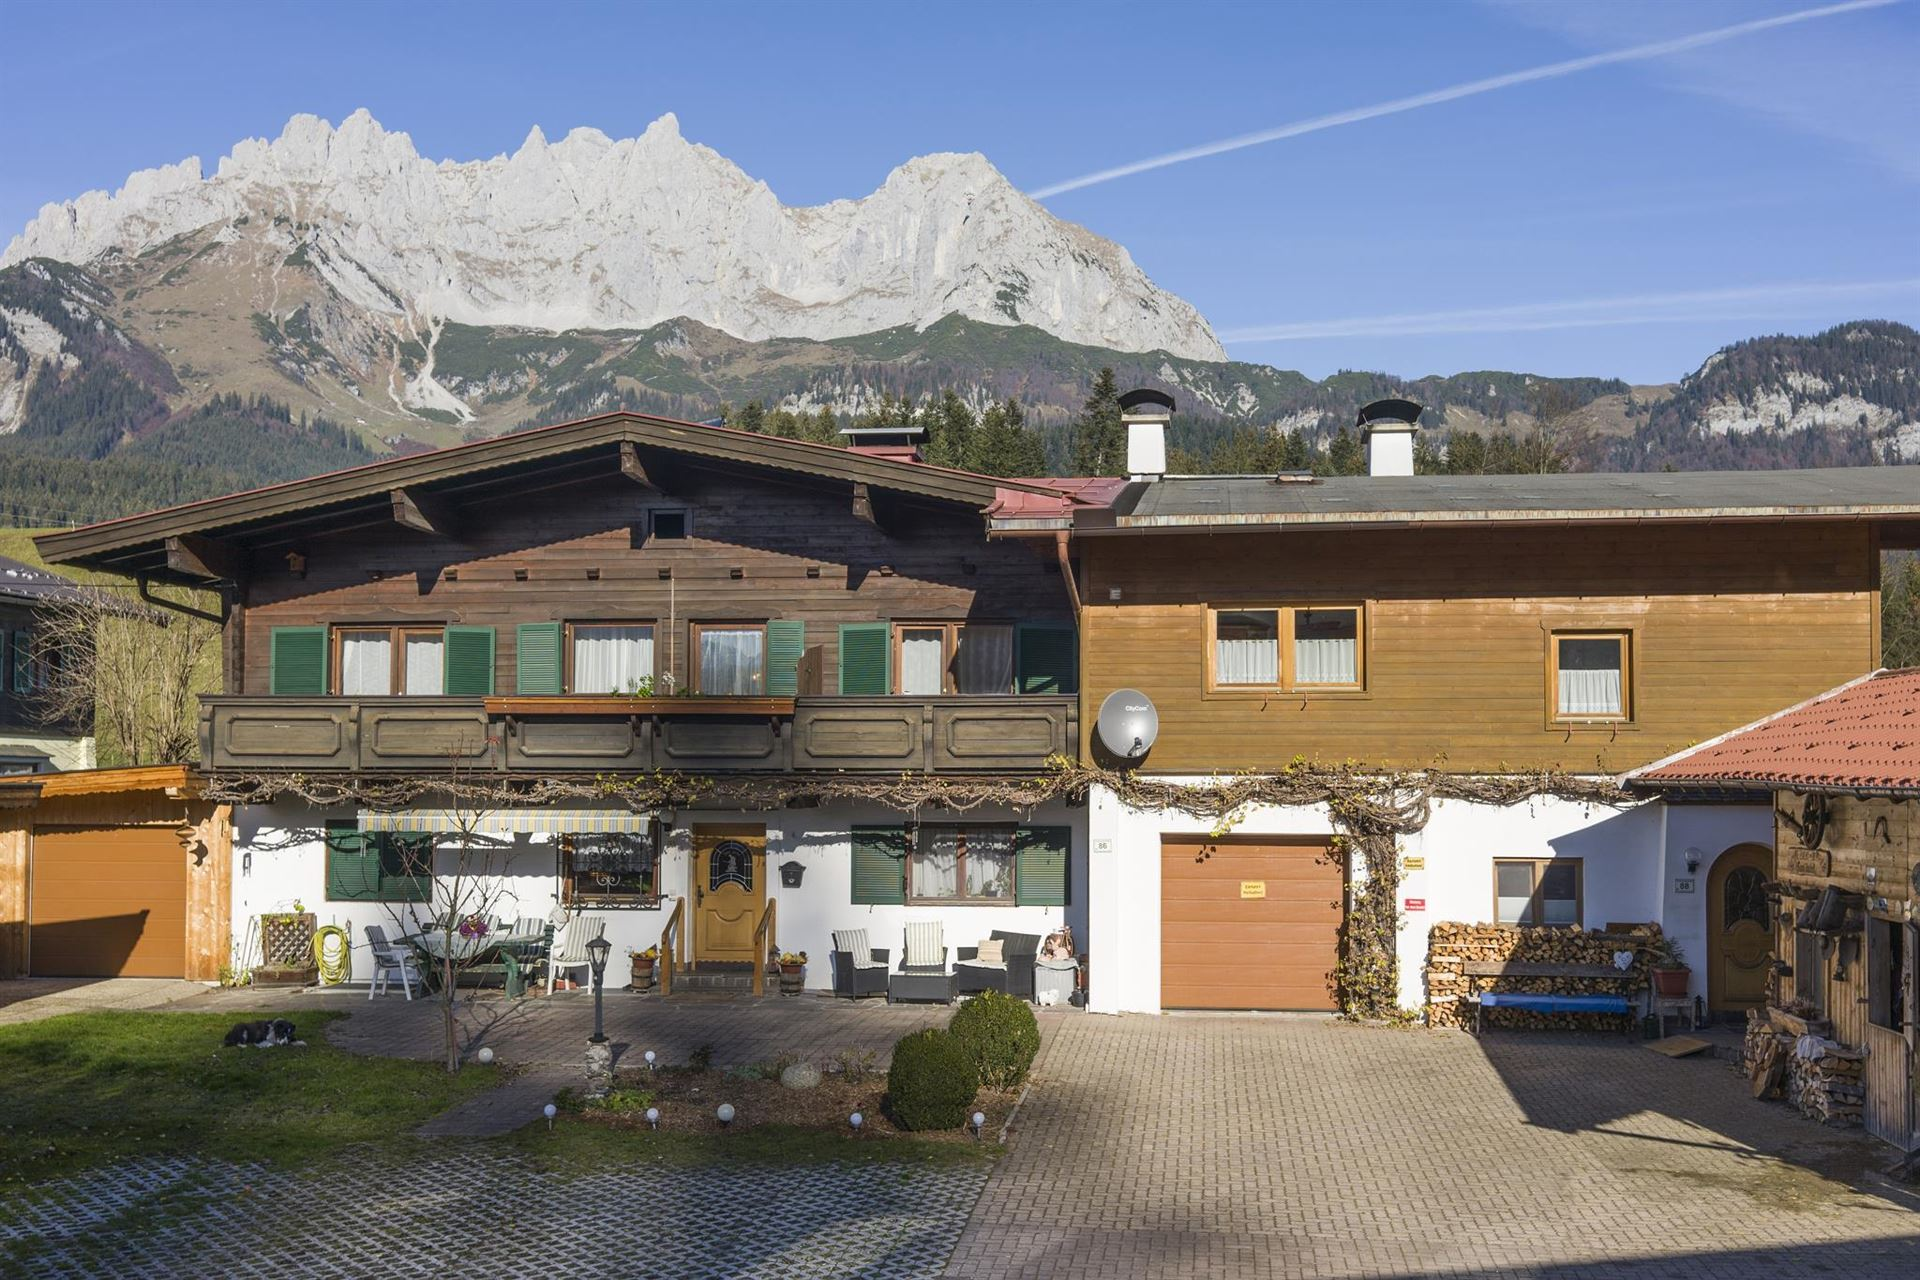 Appartement_Hofers_Kaiserblick_Innsbruckerstrasse_